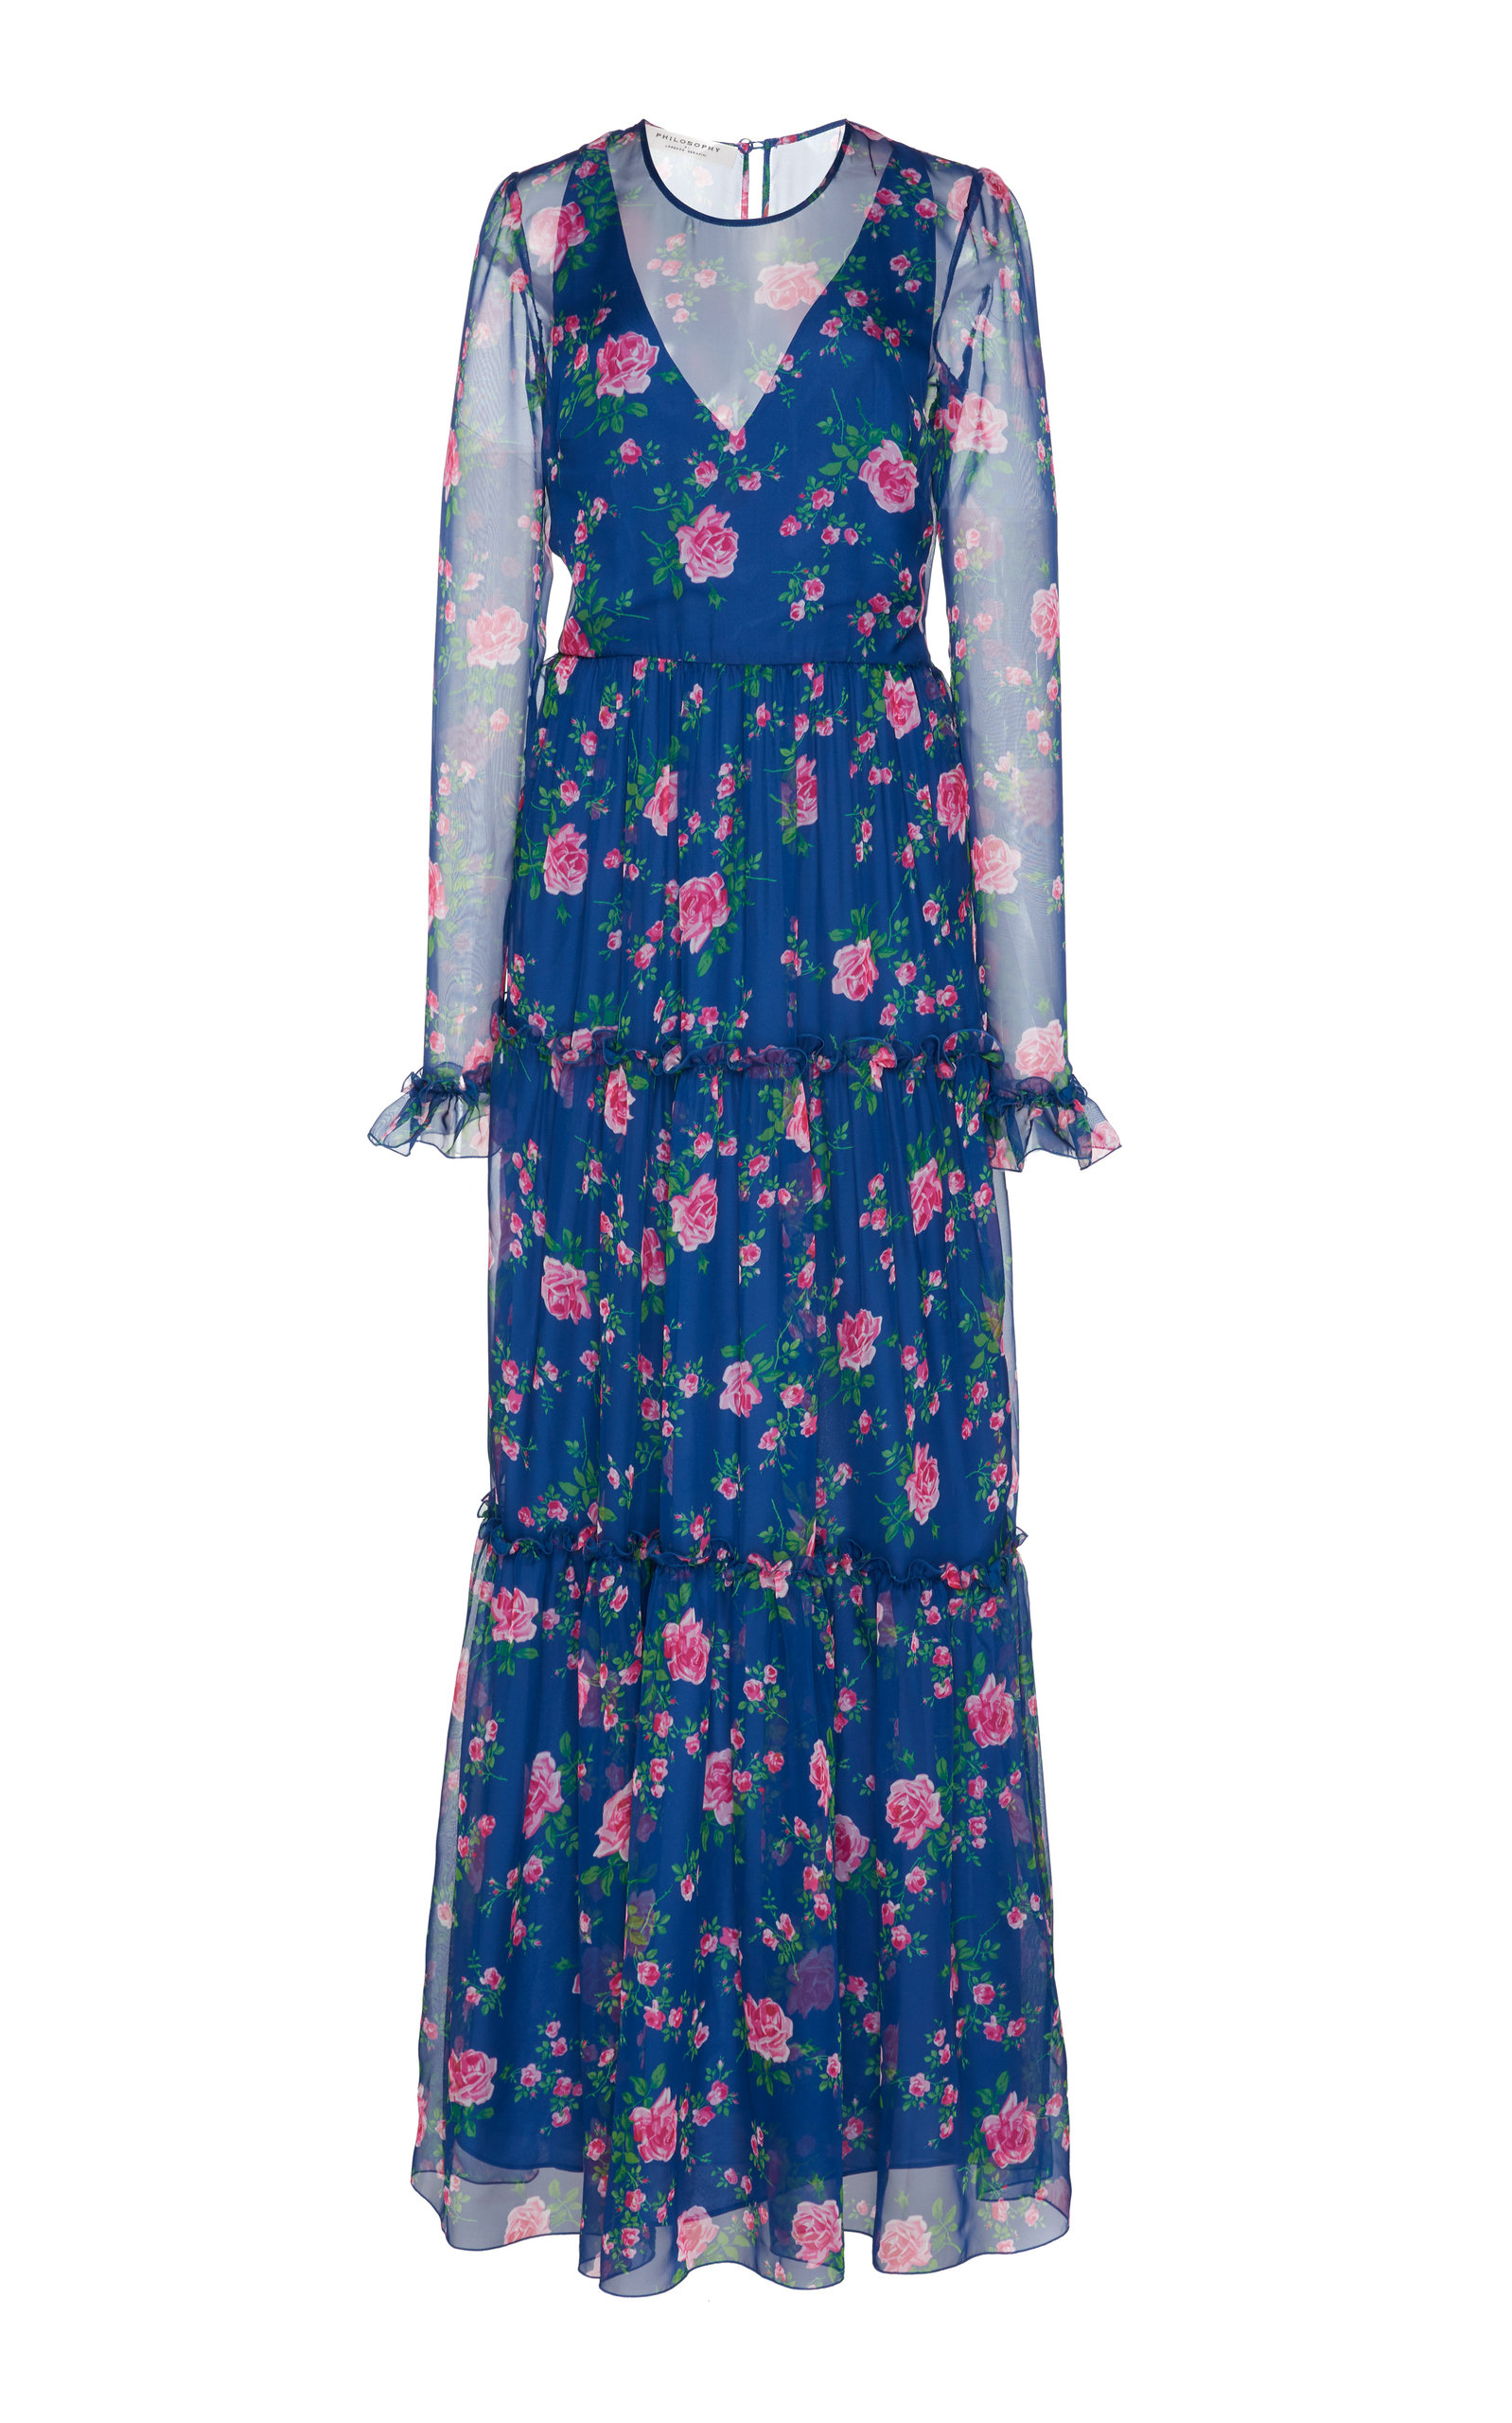 Buy Philosophy di Lorenzo Serafini Floral-Patterned Chiffon Maxi Dress online, shop Philosophy di Lorenzo Serafini at the best price